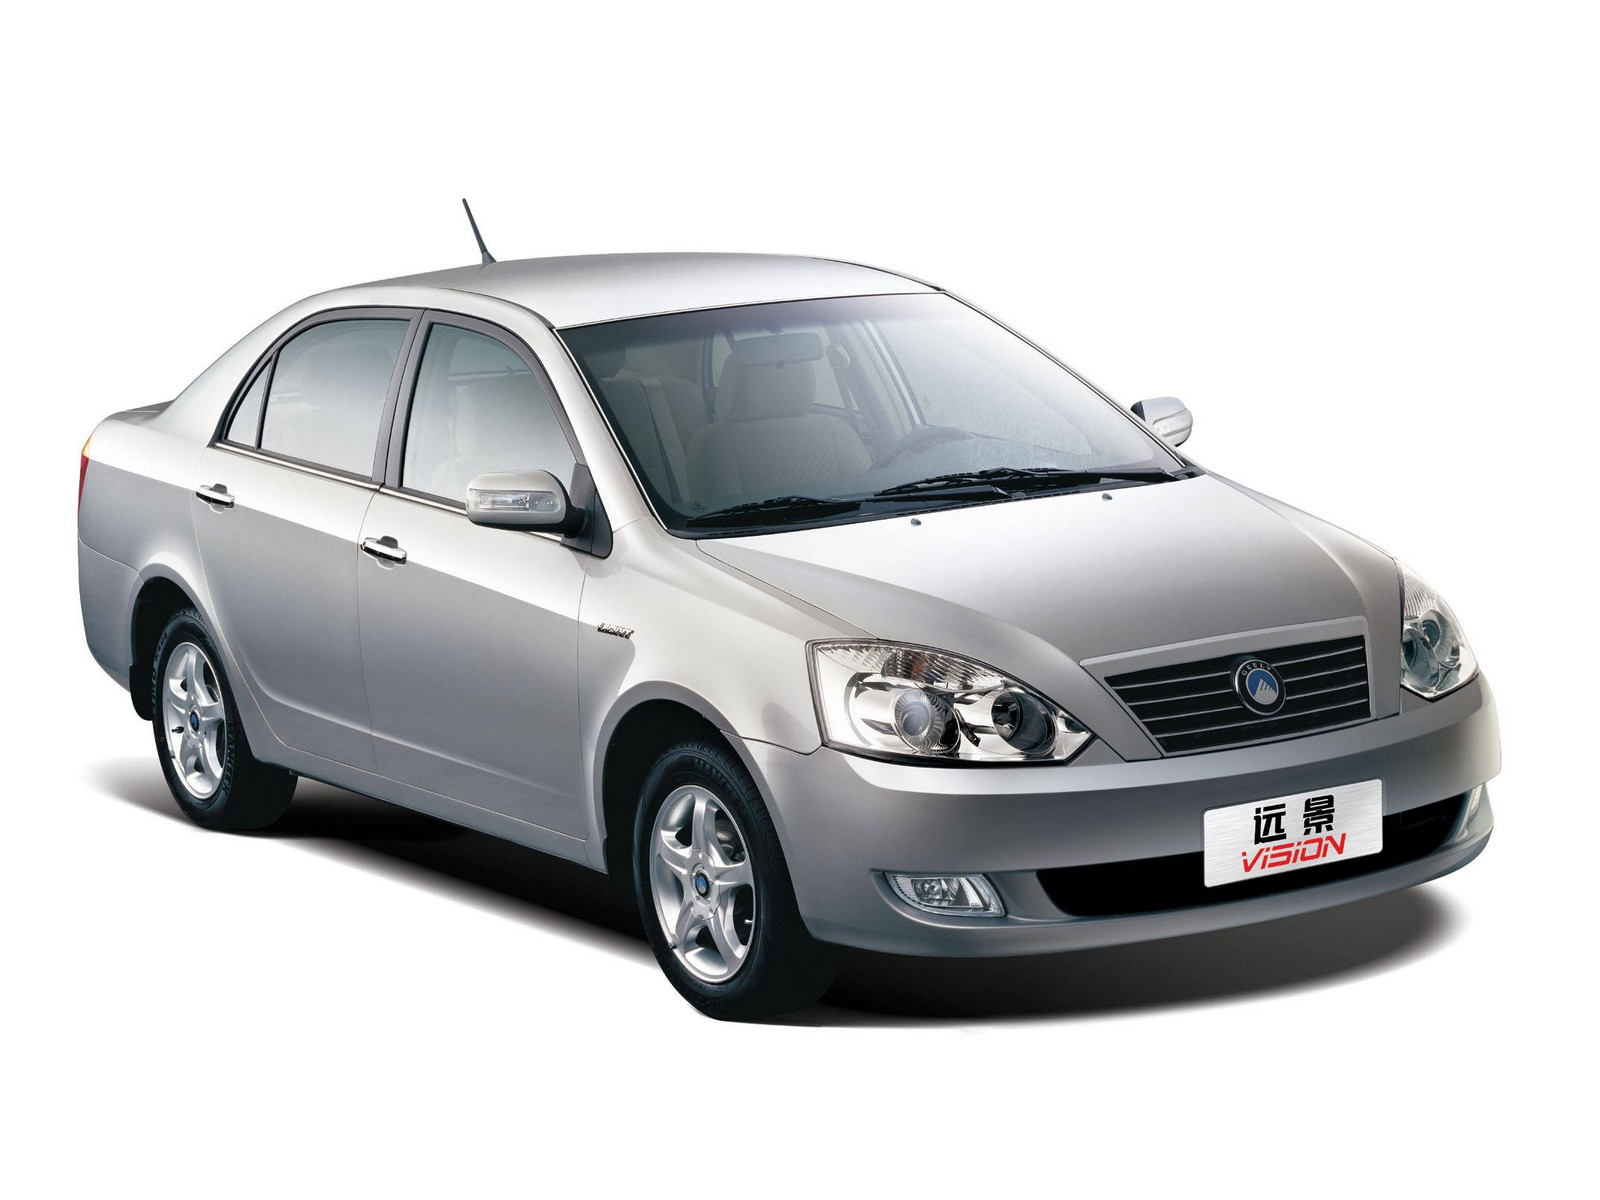 Cars geely uliou 2013